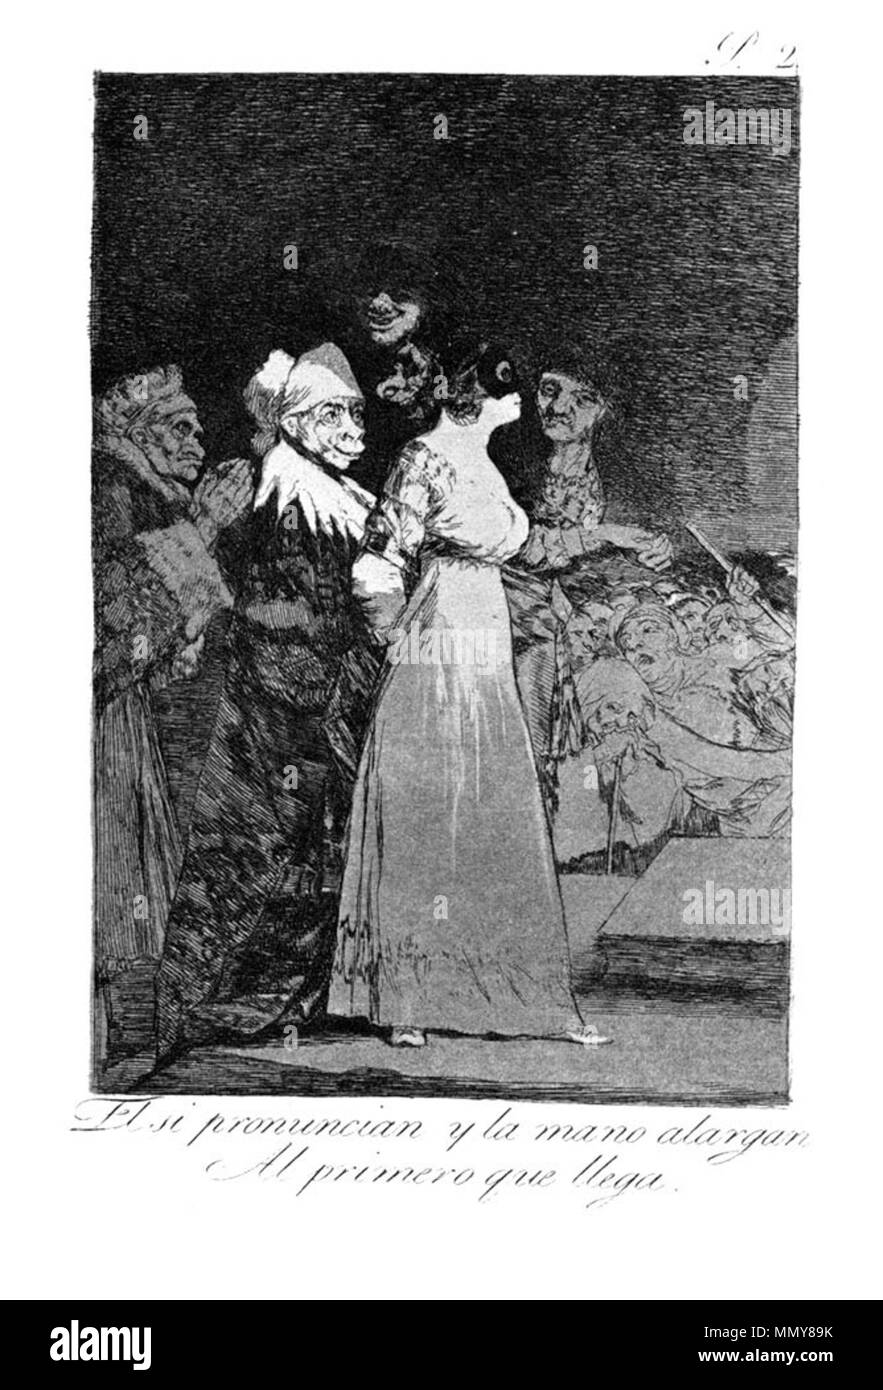 . Los Caprichos is a set of 80 aquatint prints created by Francisco Goya for release in 1799.  . 1799.   Francisco Goya (1746–1828)   Alternative names Francisco Goya Lucientes, Francisco de Goya y Lucientes, Francisco José Goya Lucientes  Description Spanish painter, printmaker, lithographer, engraver and etcher  Date of birth/death 30 March 1746 16 April 1828  Location of birth/death Fuendetodos Bordeaux  Work location Madrid, Zaragoza, Bordeaux  Authority control  : Q5432 VIAF:?54343141 ISNI:?0000 0001 2280 1608 ULAN:?500118936 LCCN:?n79003363 NLA:?36545788 WorldCat Goya - Caprichos (02 - Stock Image